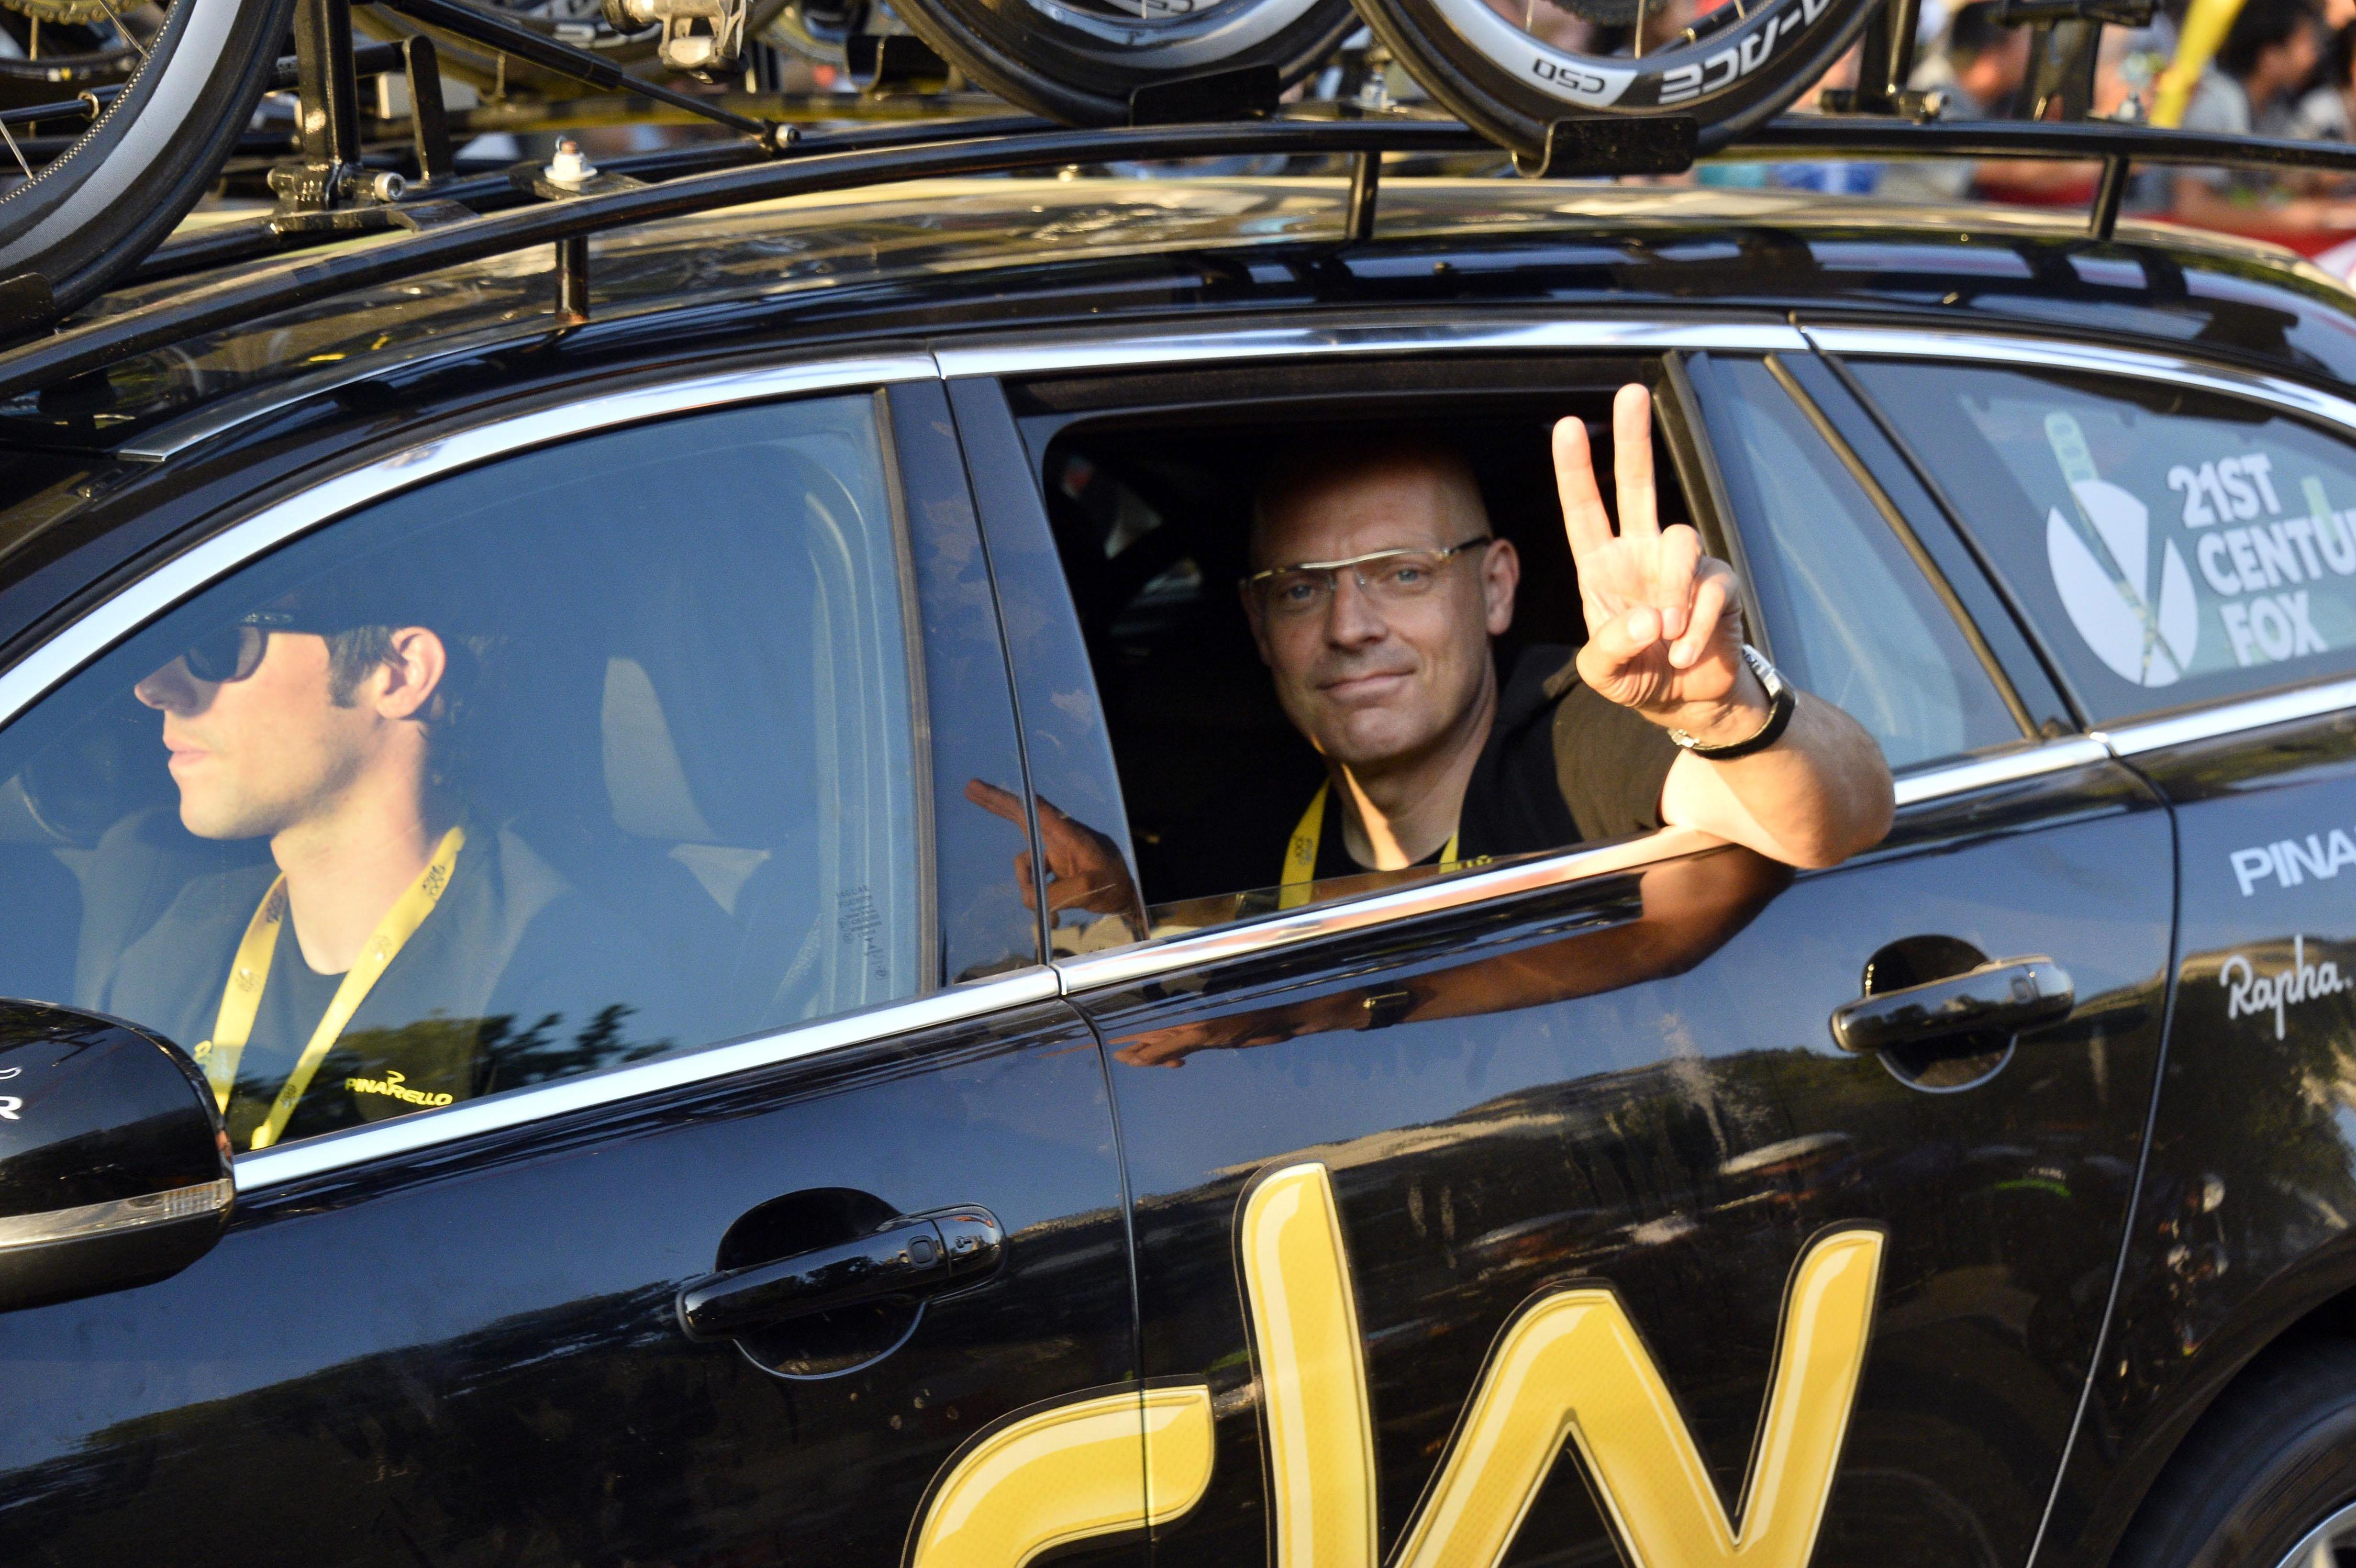 Brailsford remains in charge of Team Sky despite the controversy